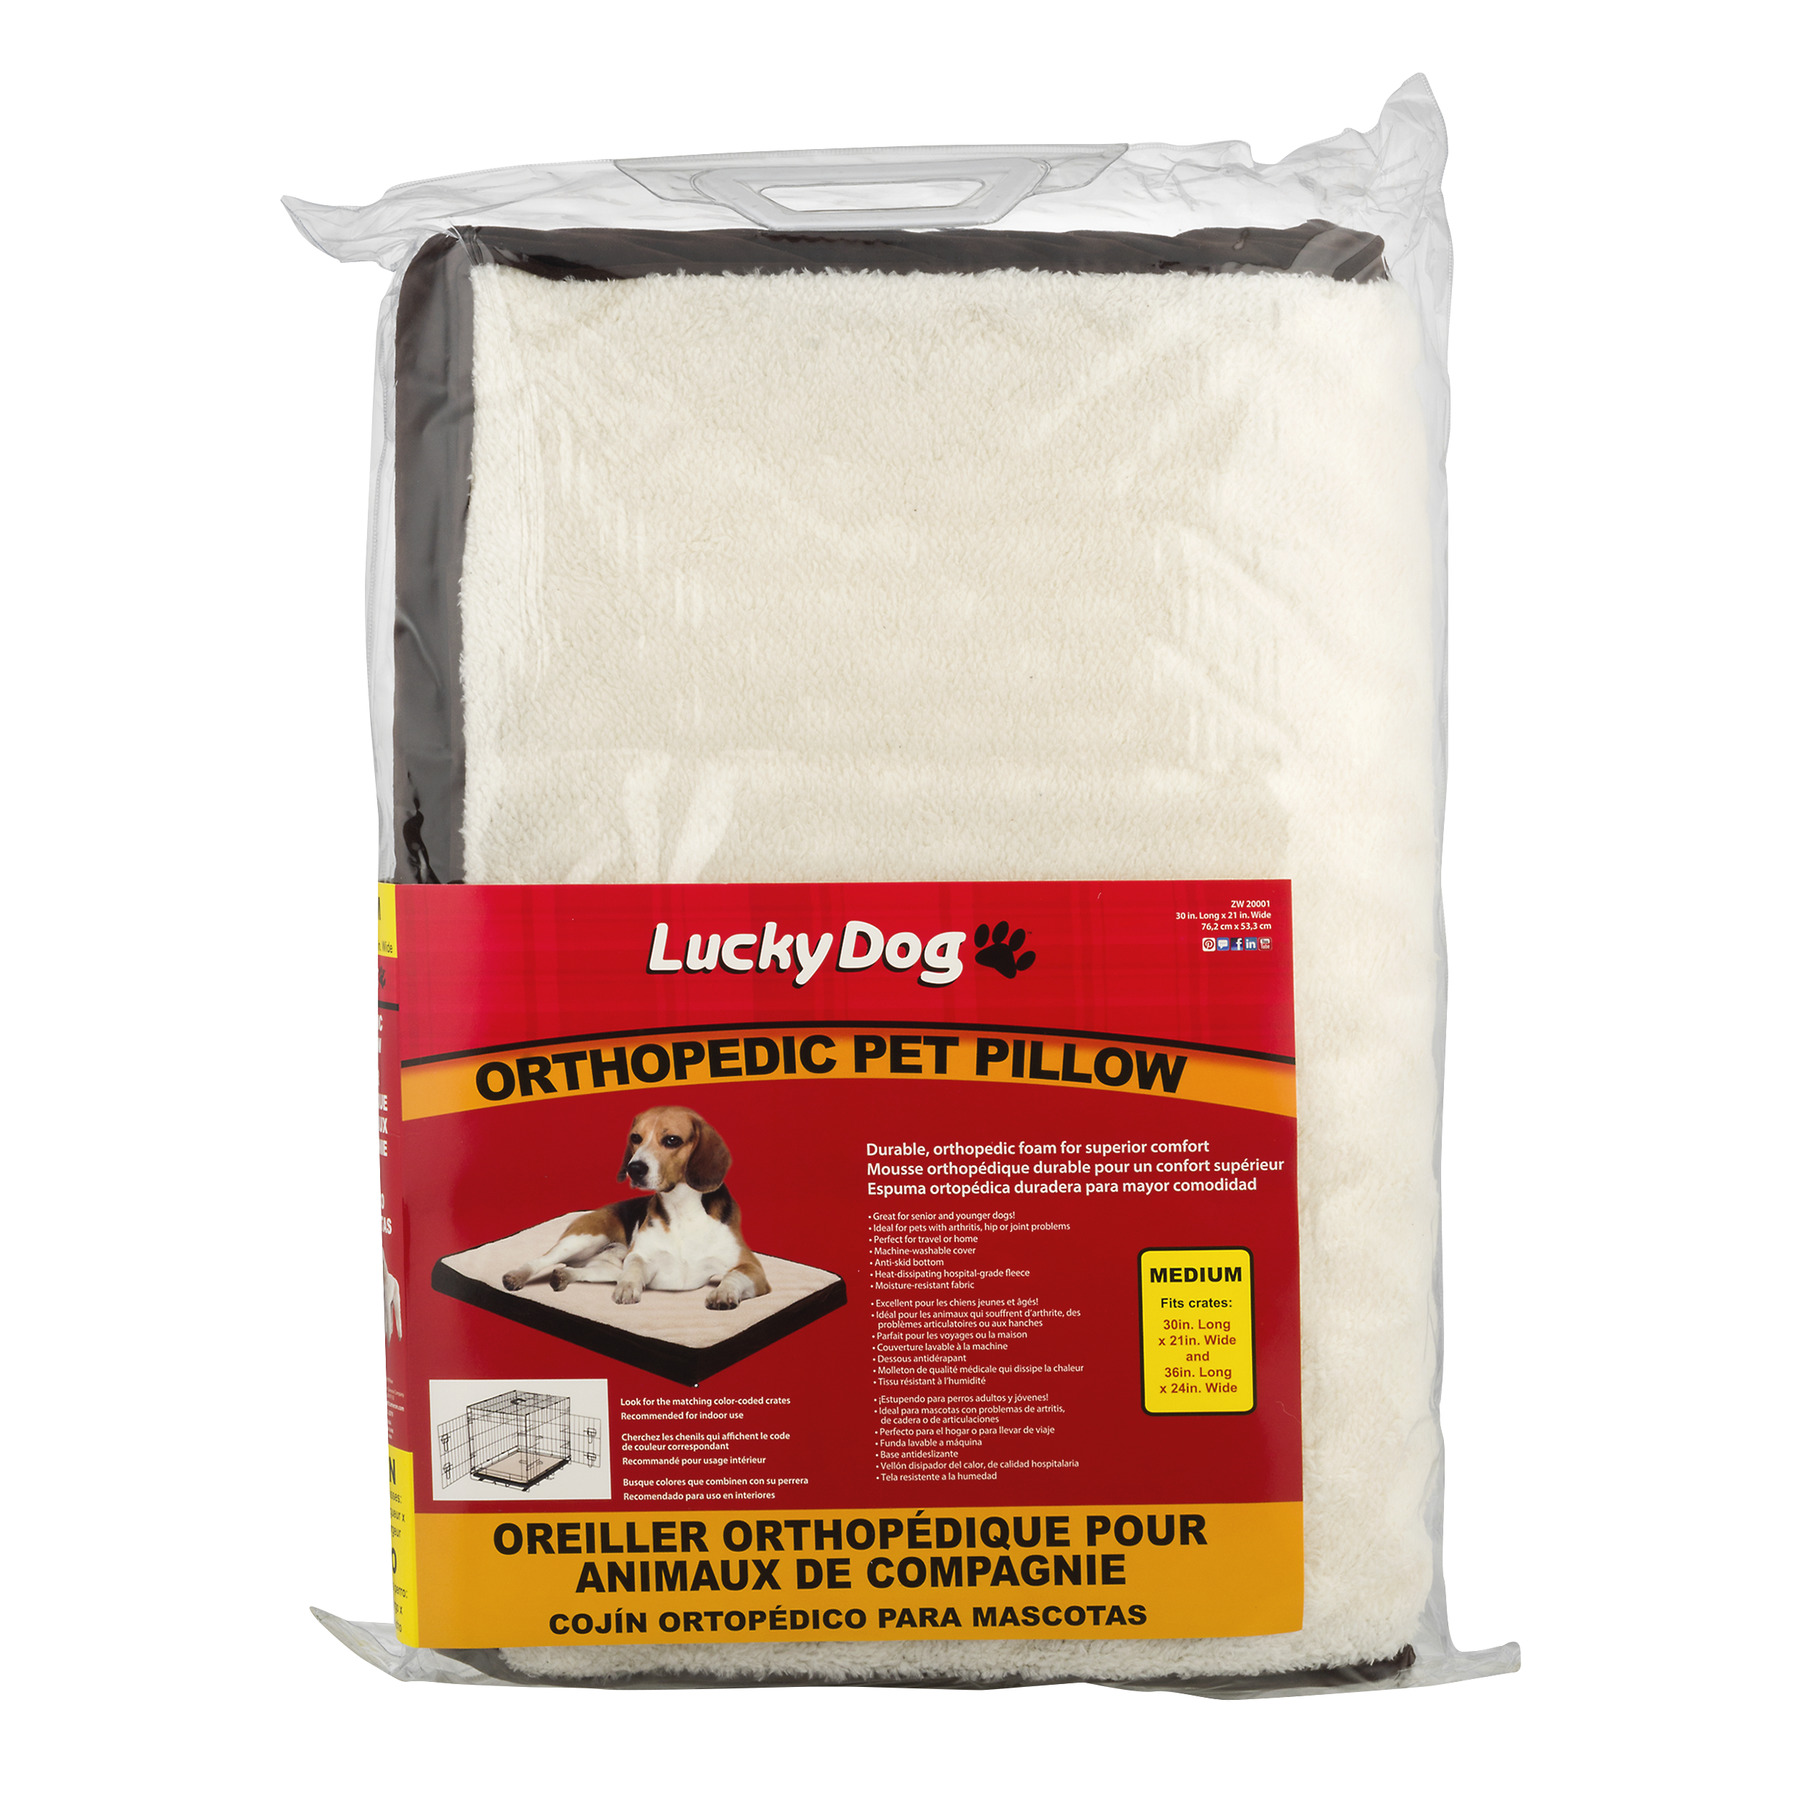 Lucky Dog Orthopedic Pet Pillow Medium, 1.0 CT